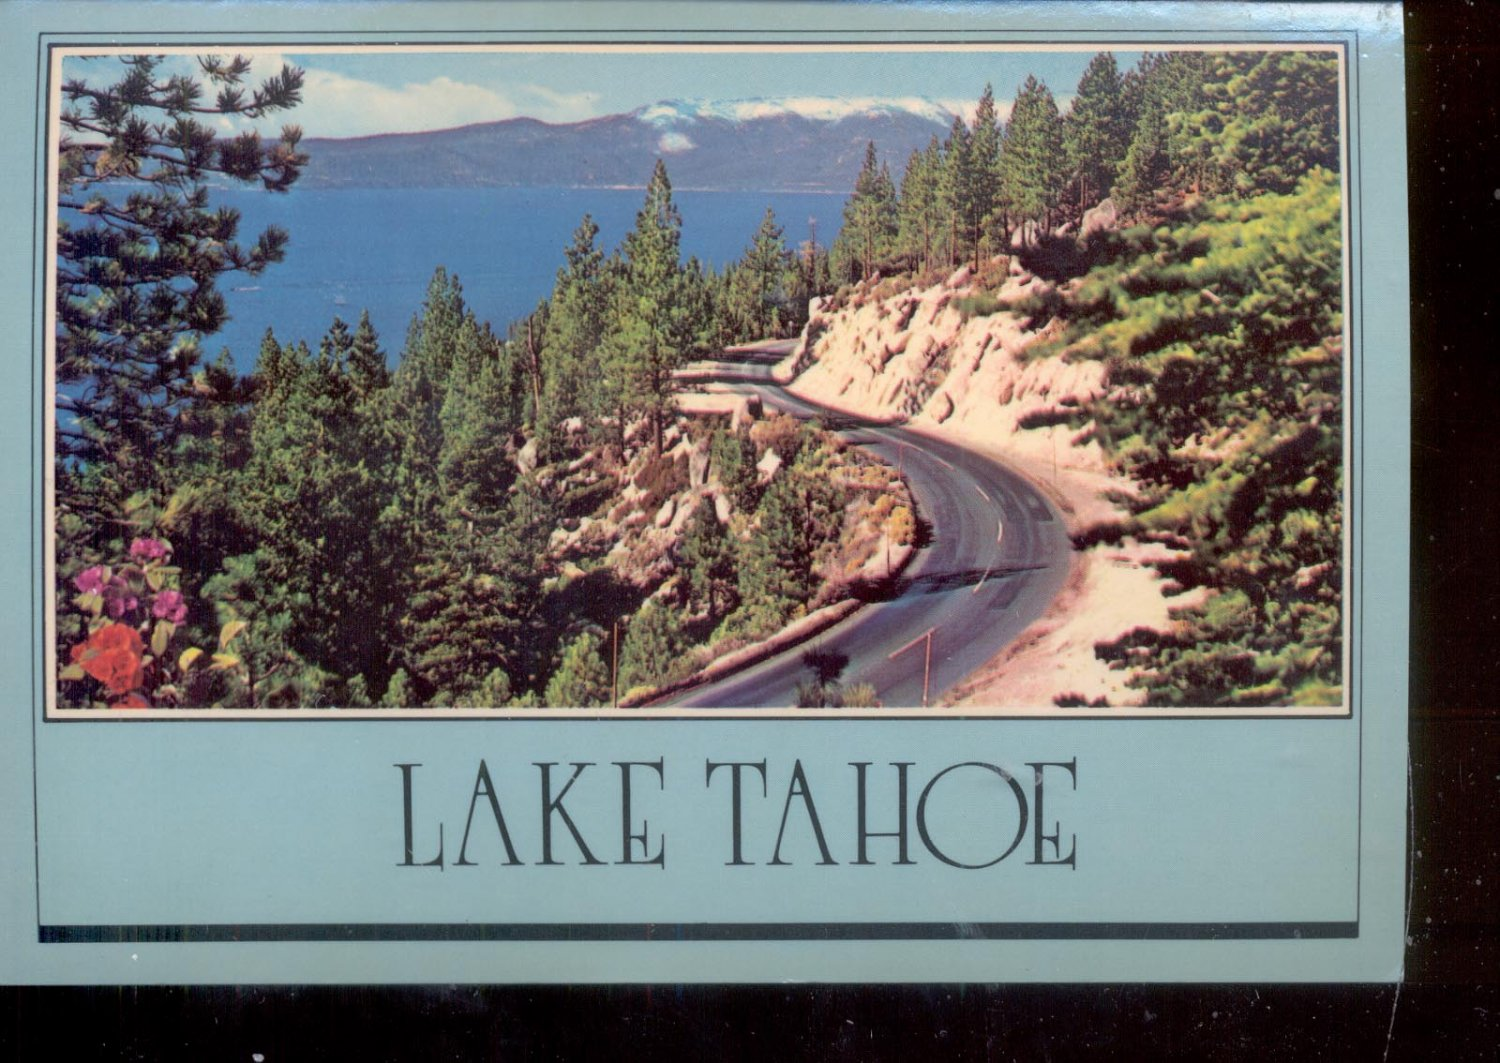 Lake tahoe highway 28 postcard 761 for Lake tahoe jewelry stores